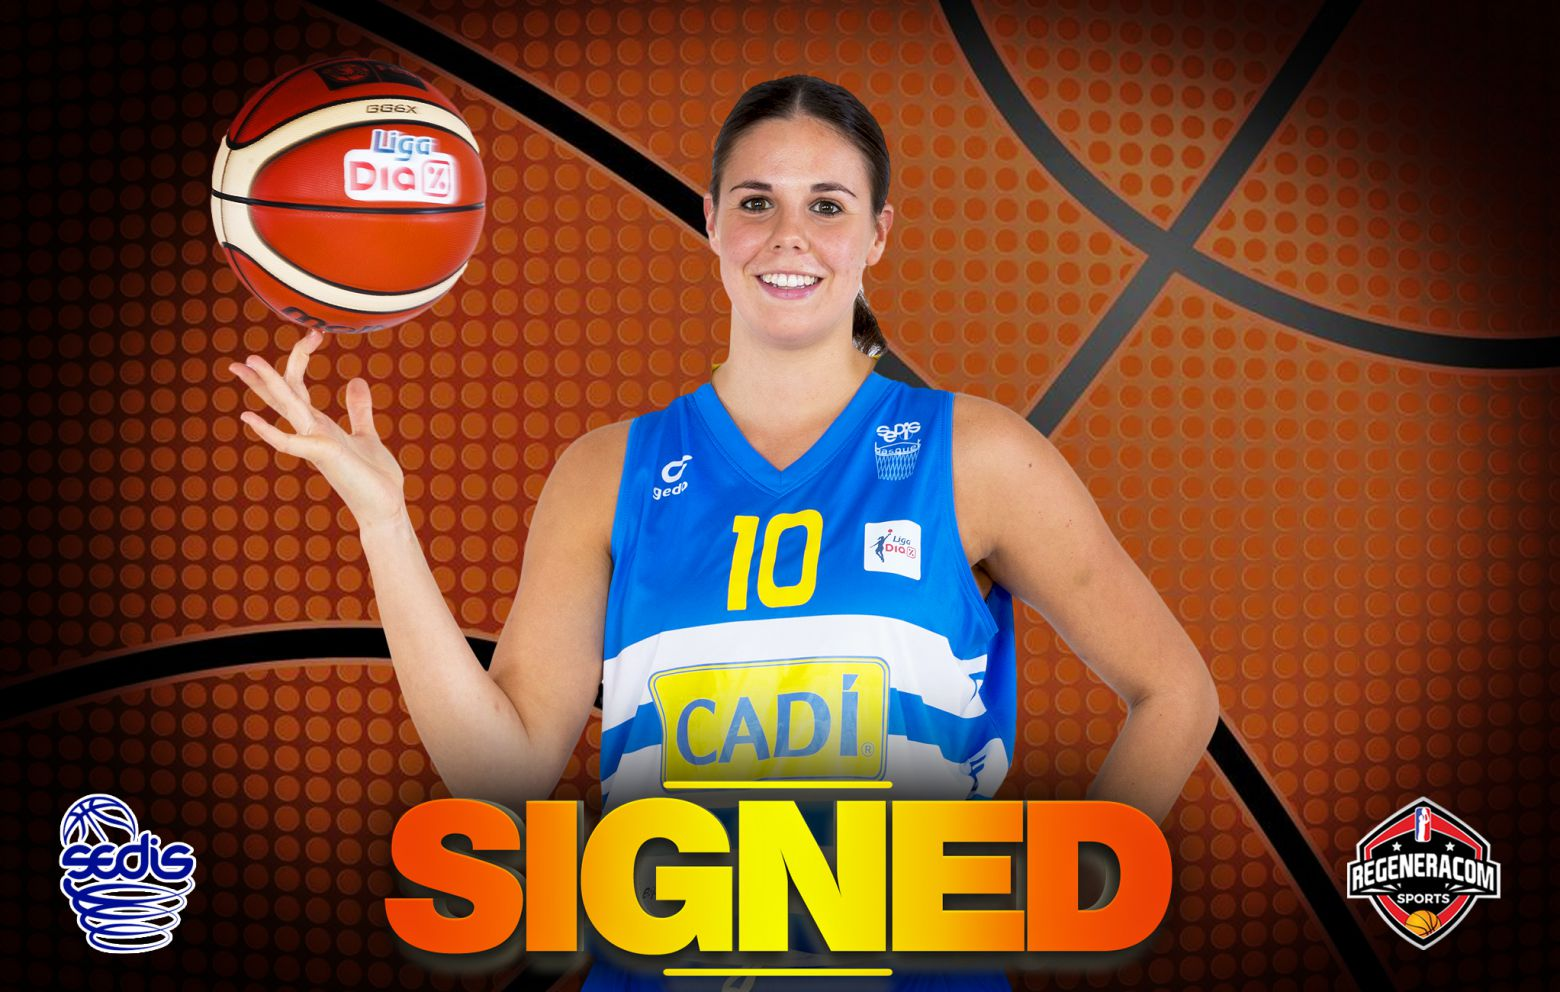 YURENA DÍAZ has signed in Spain with Cadí La Seu